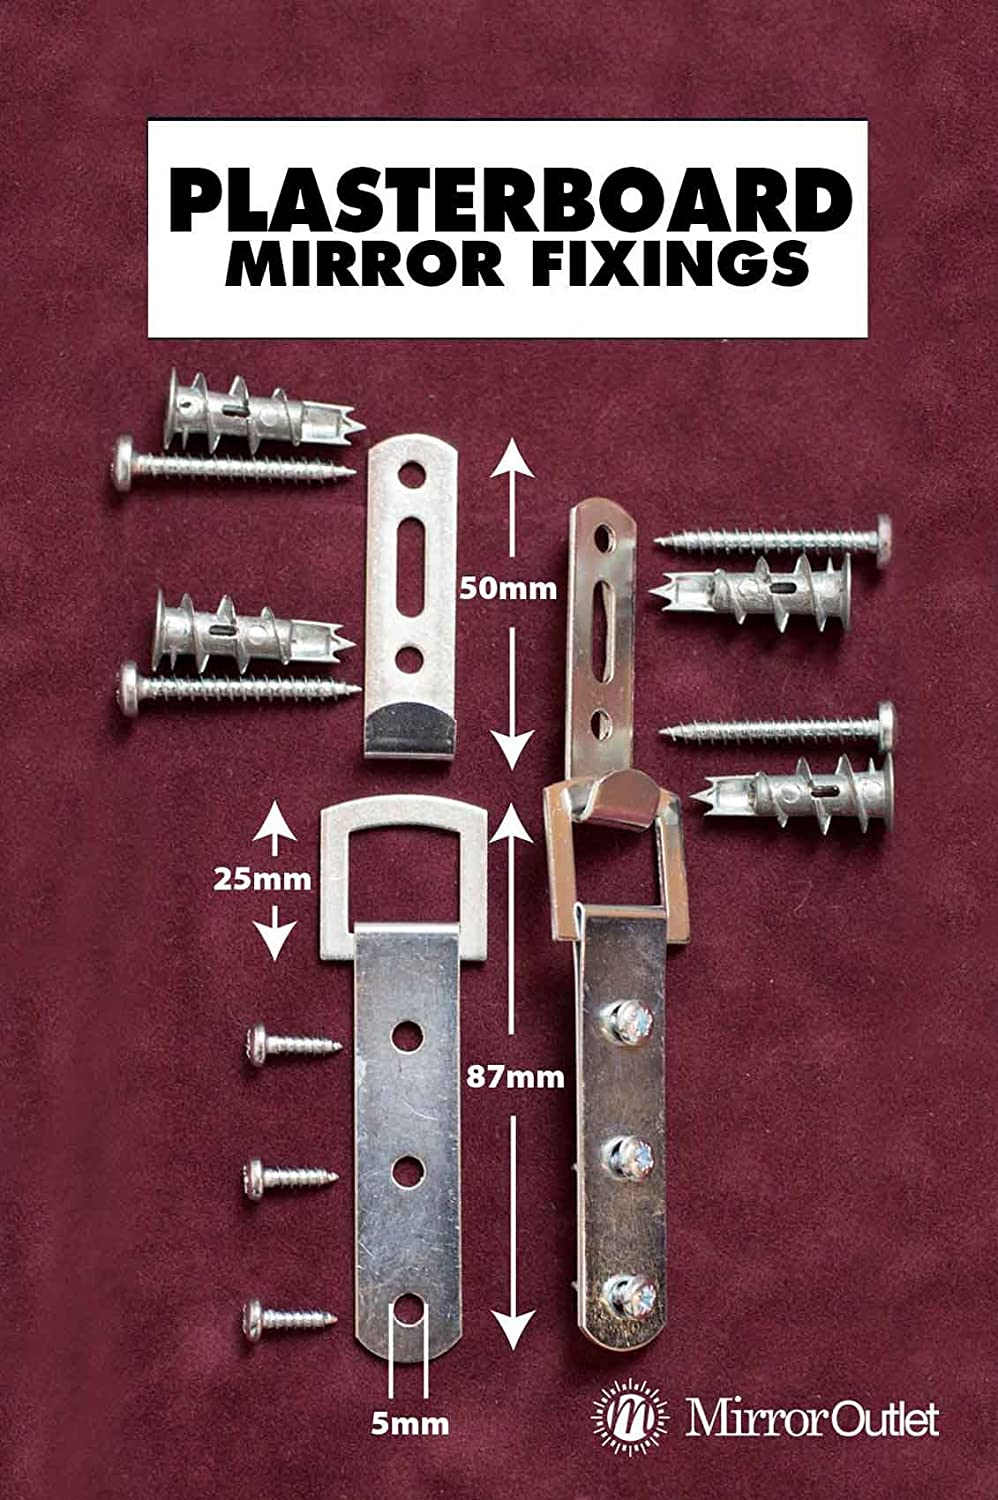 Heavy Duty Mirror Fixings + Hooks + Straps + Fittings for a Plasterboard Wall Mirroroutlet